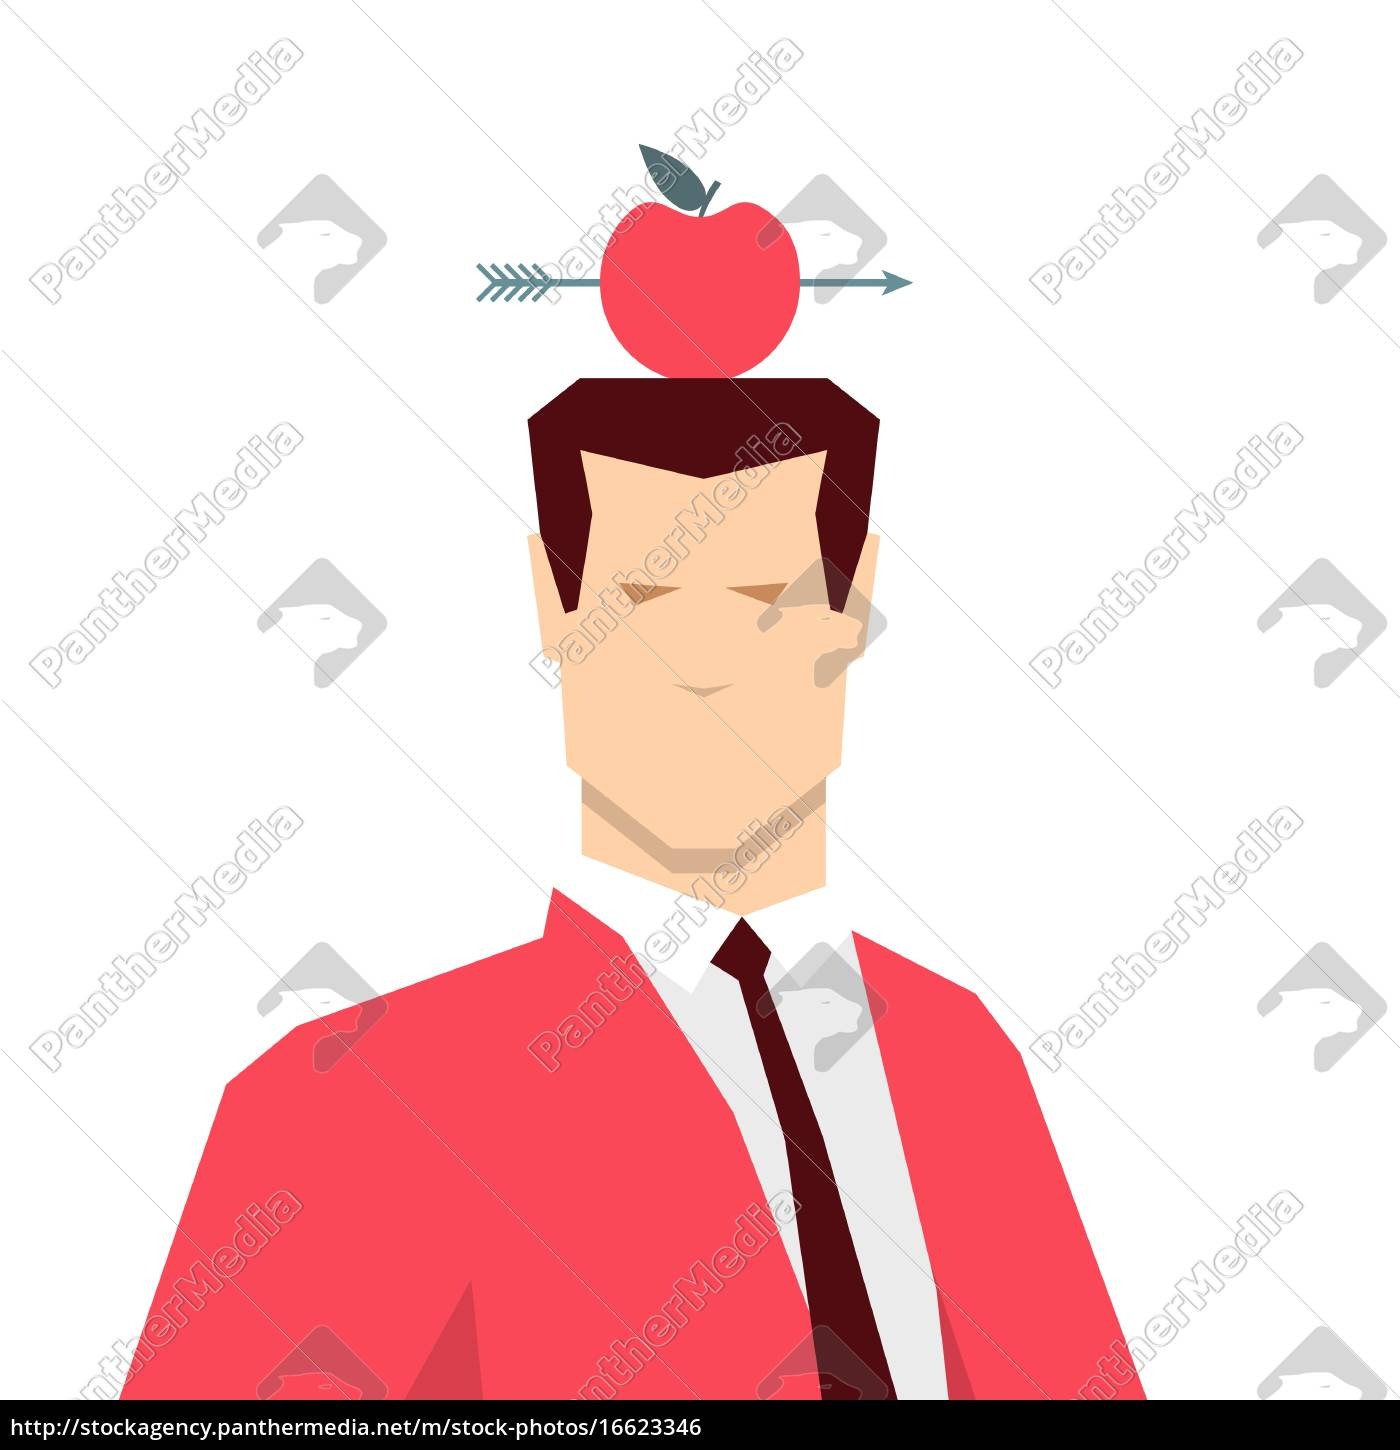 red, suit, businessman. - 16623346